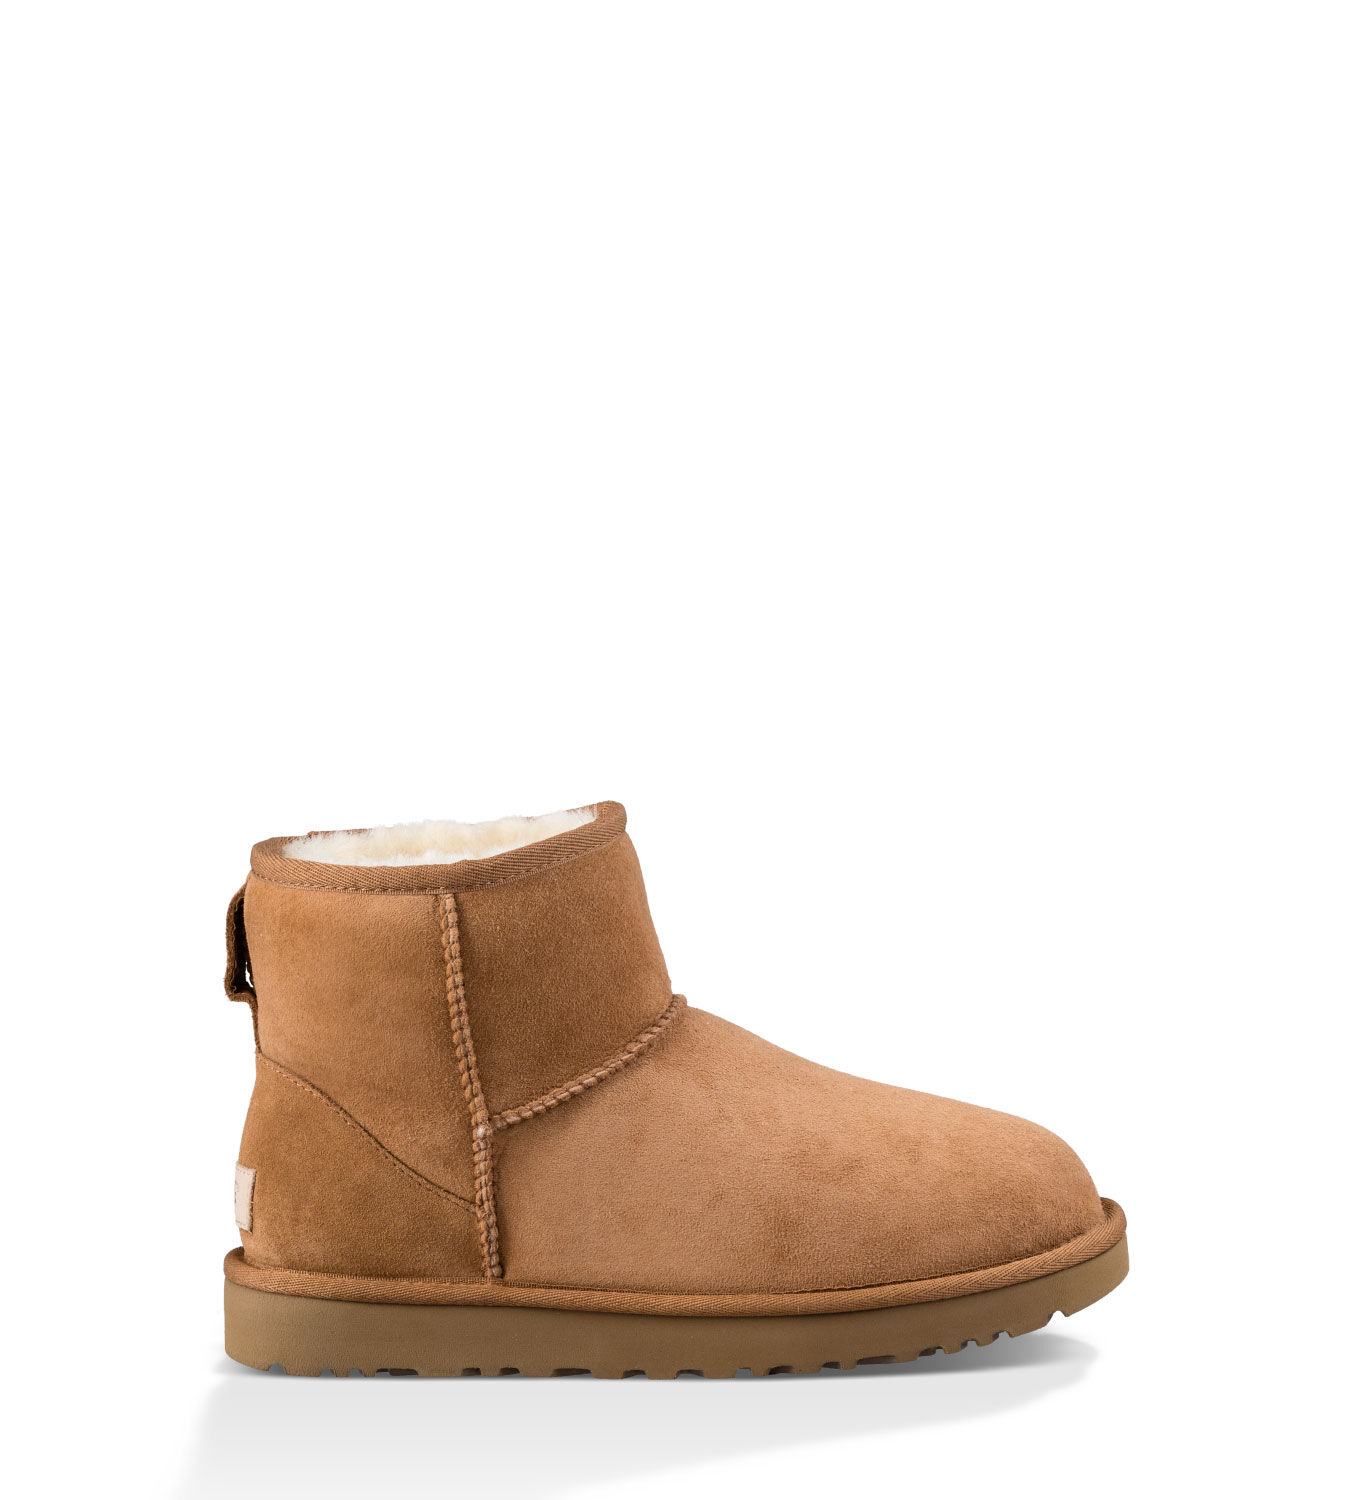 UGG® Women's Collection: Women's Shoes, Apparel & Accesories